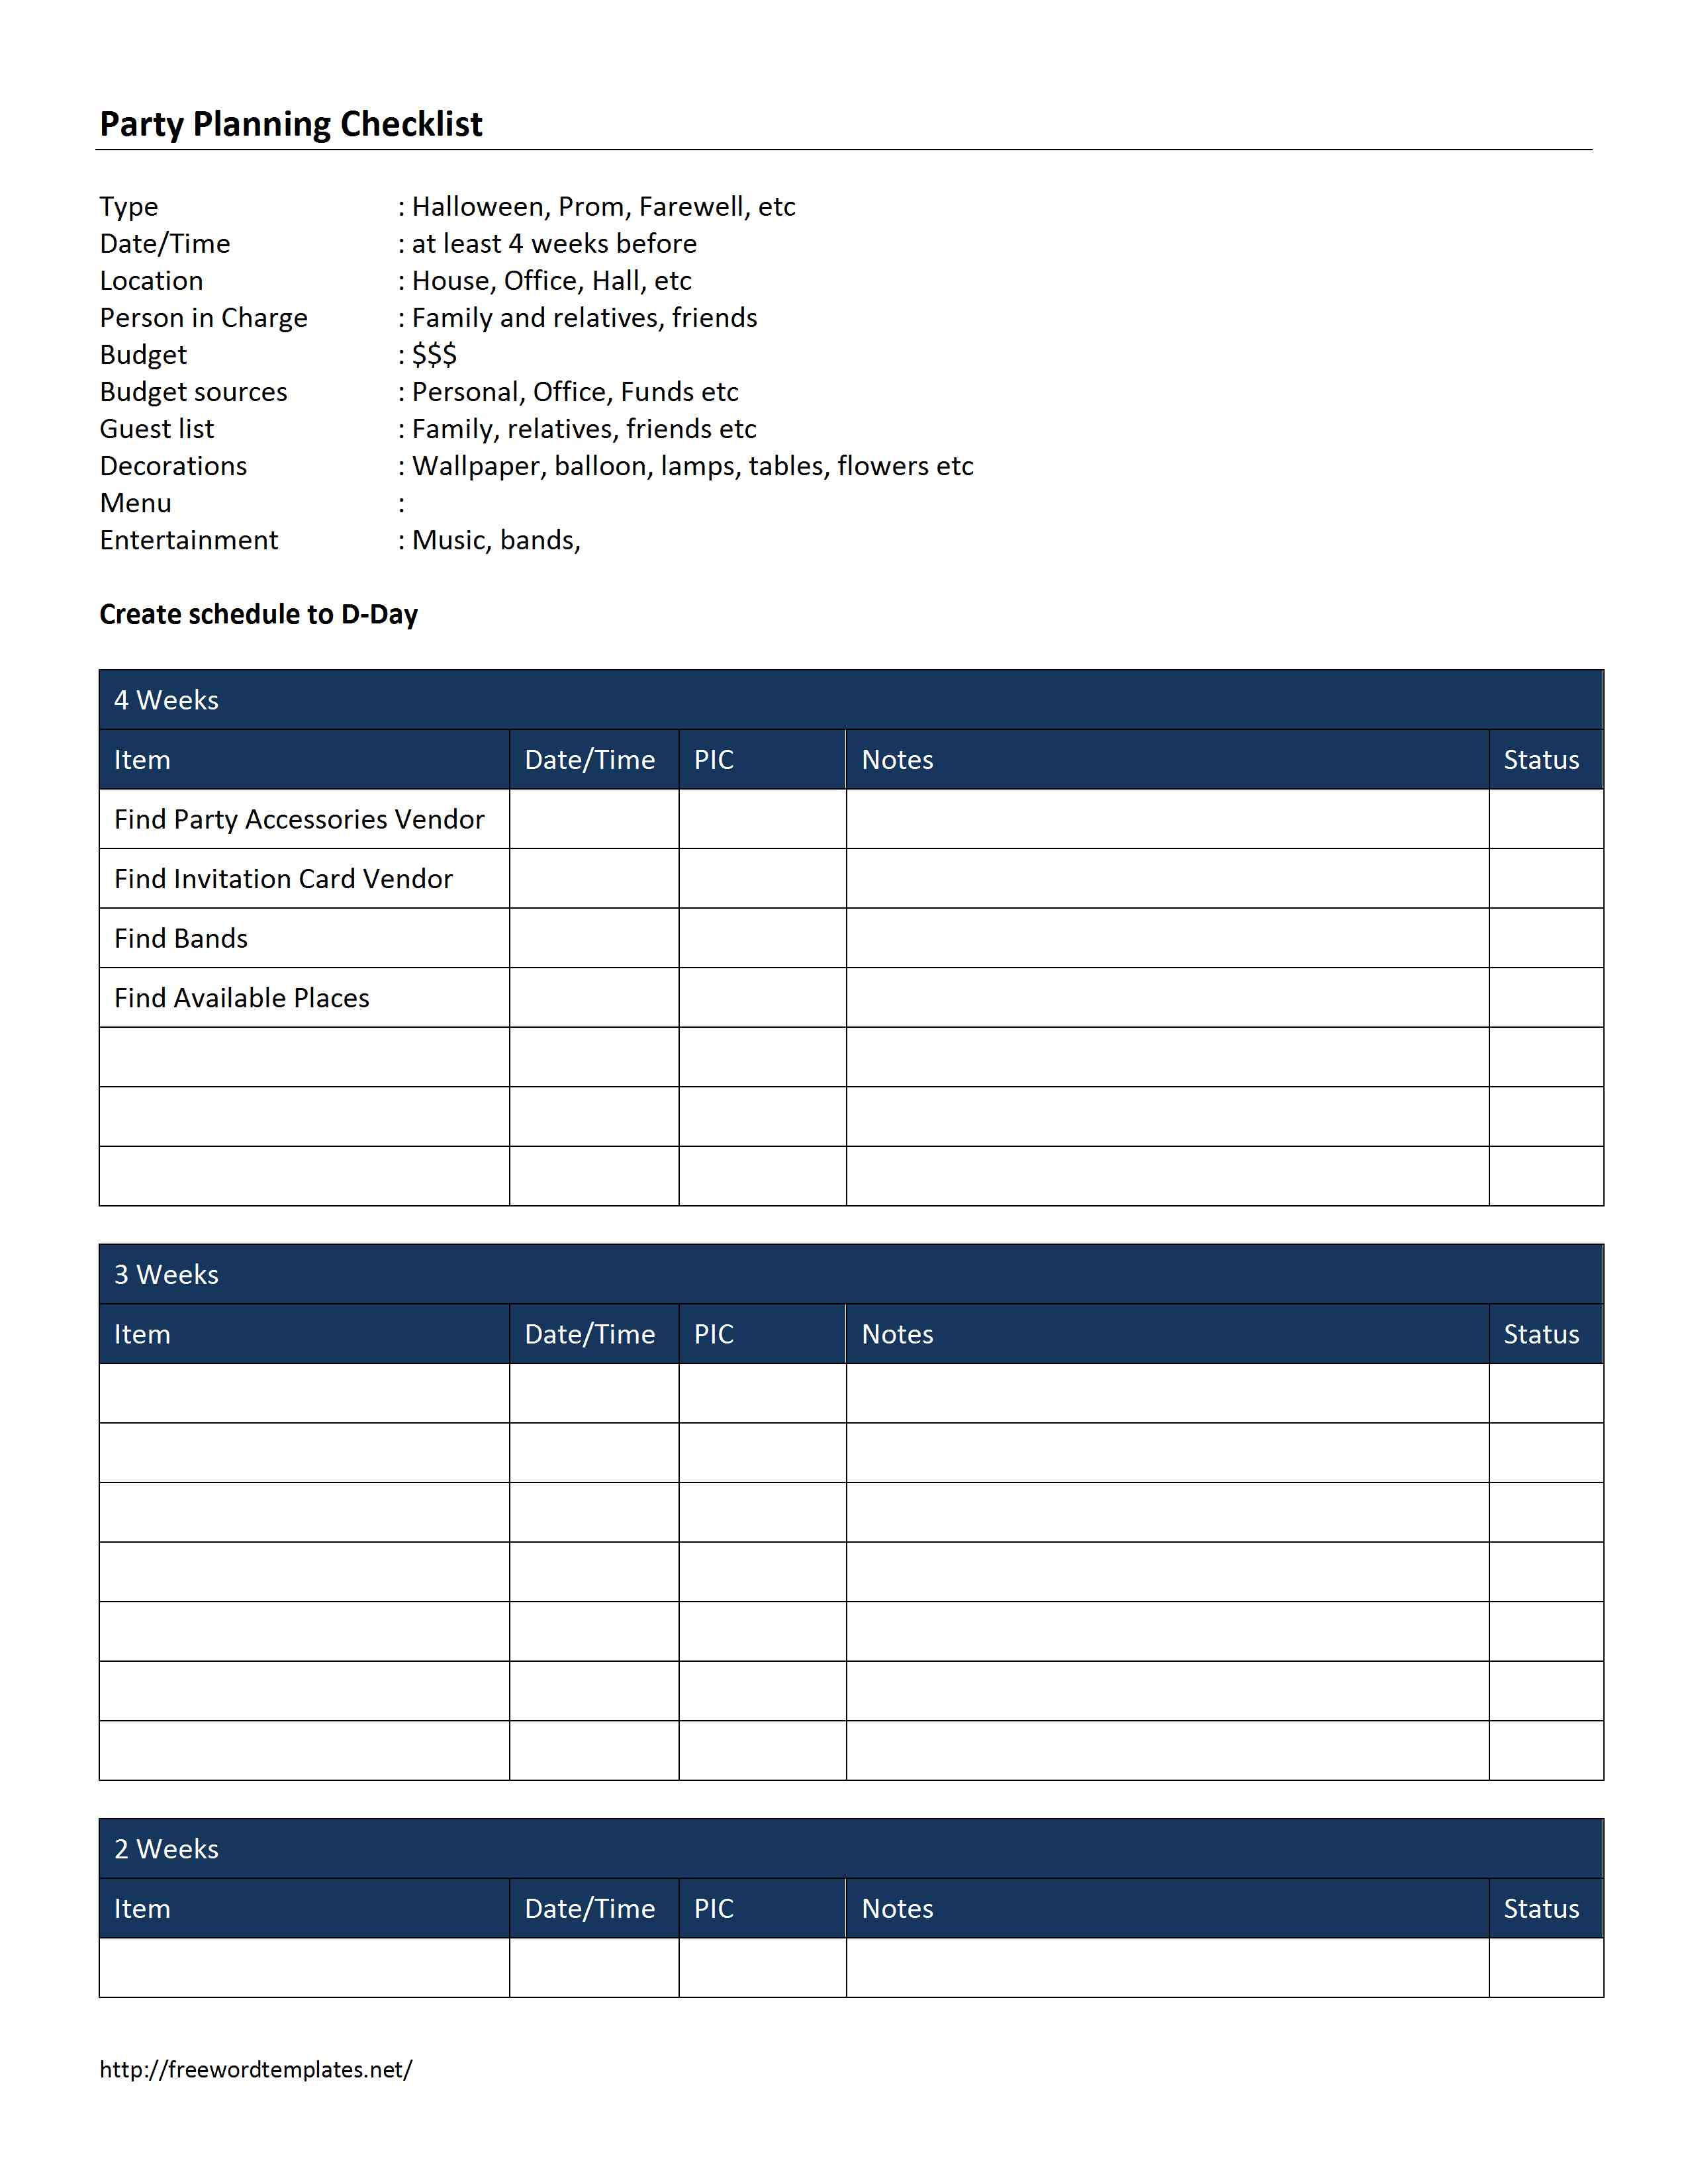 Samples Of Event Planning Checklist Template Excel Throughout Event Planning Checklist Template Excel For Free